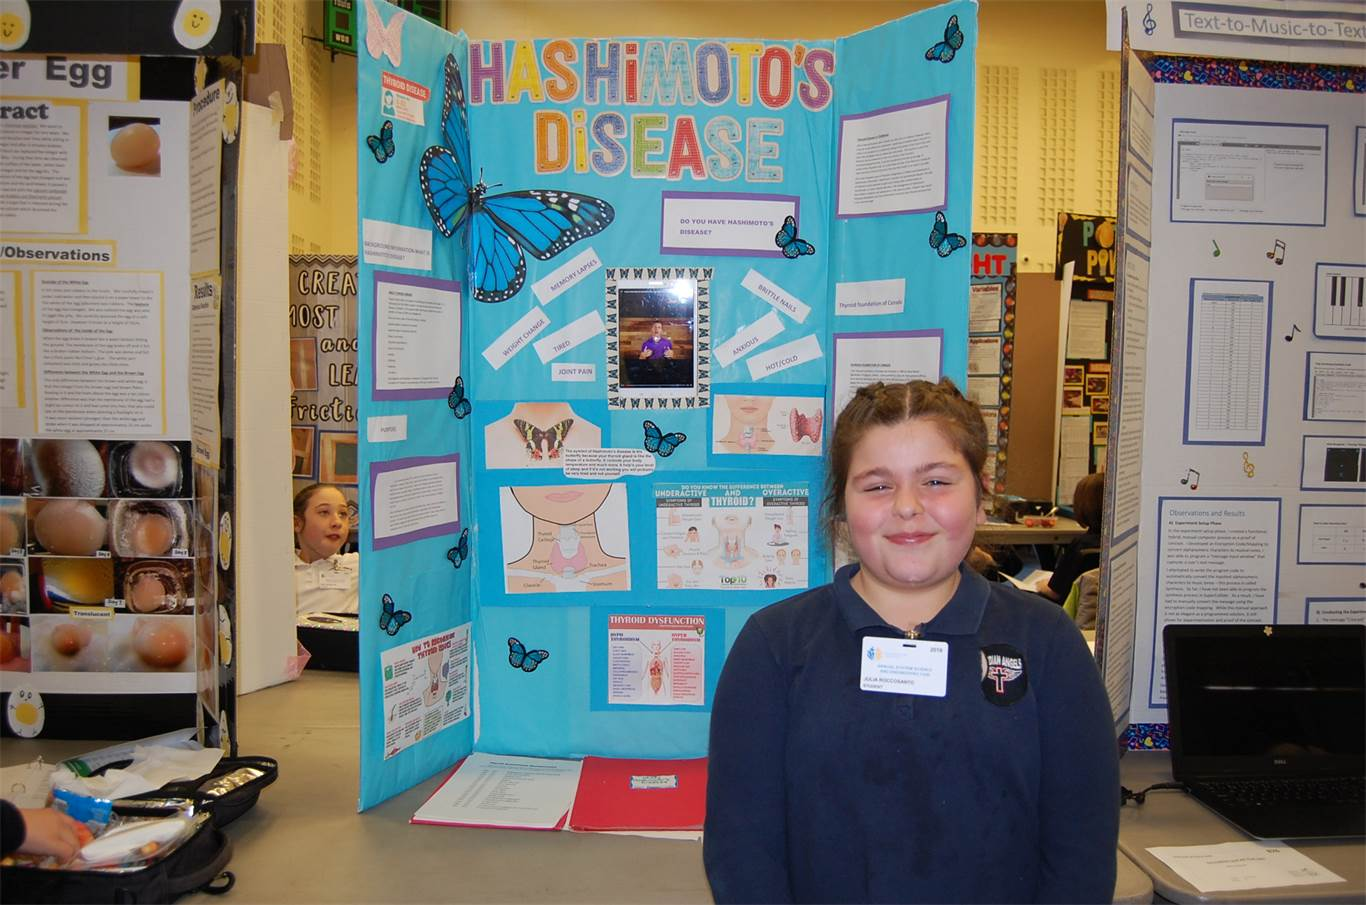 Julia Roccosanto, a Grade 5 student at Guardian Angels Catholic Elementary School, did her science project on